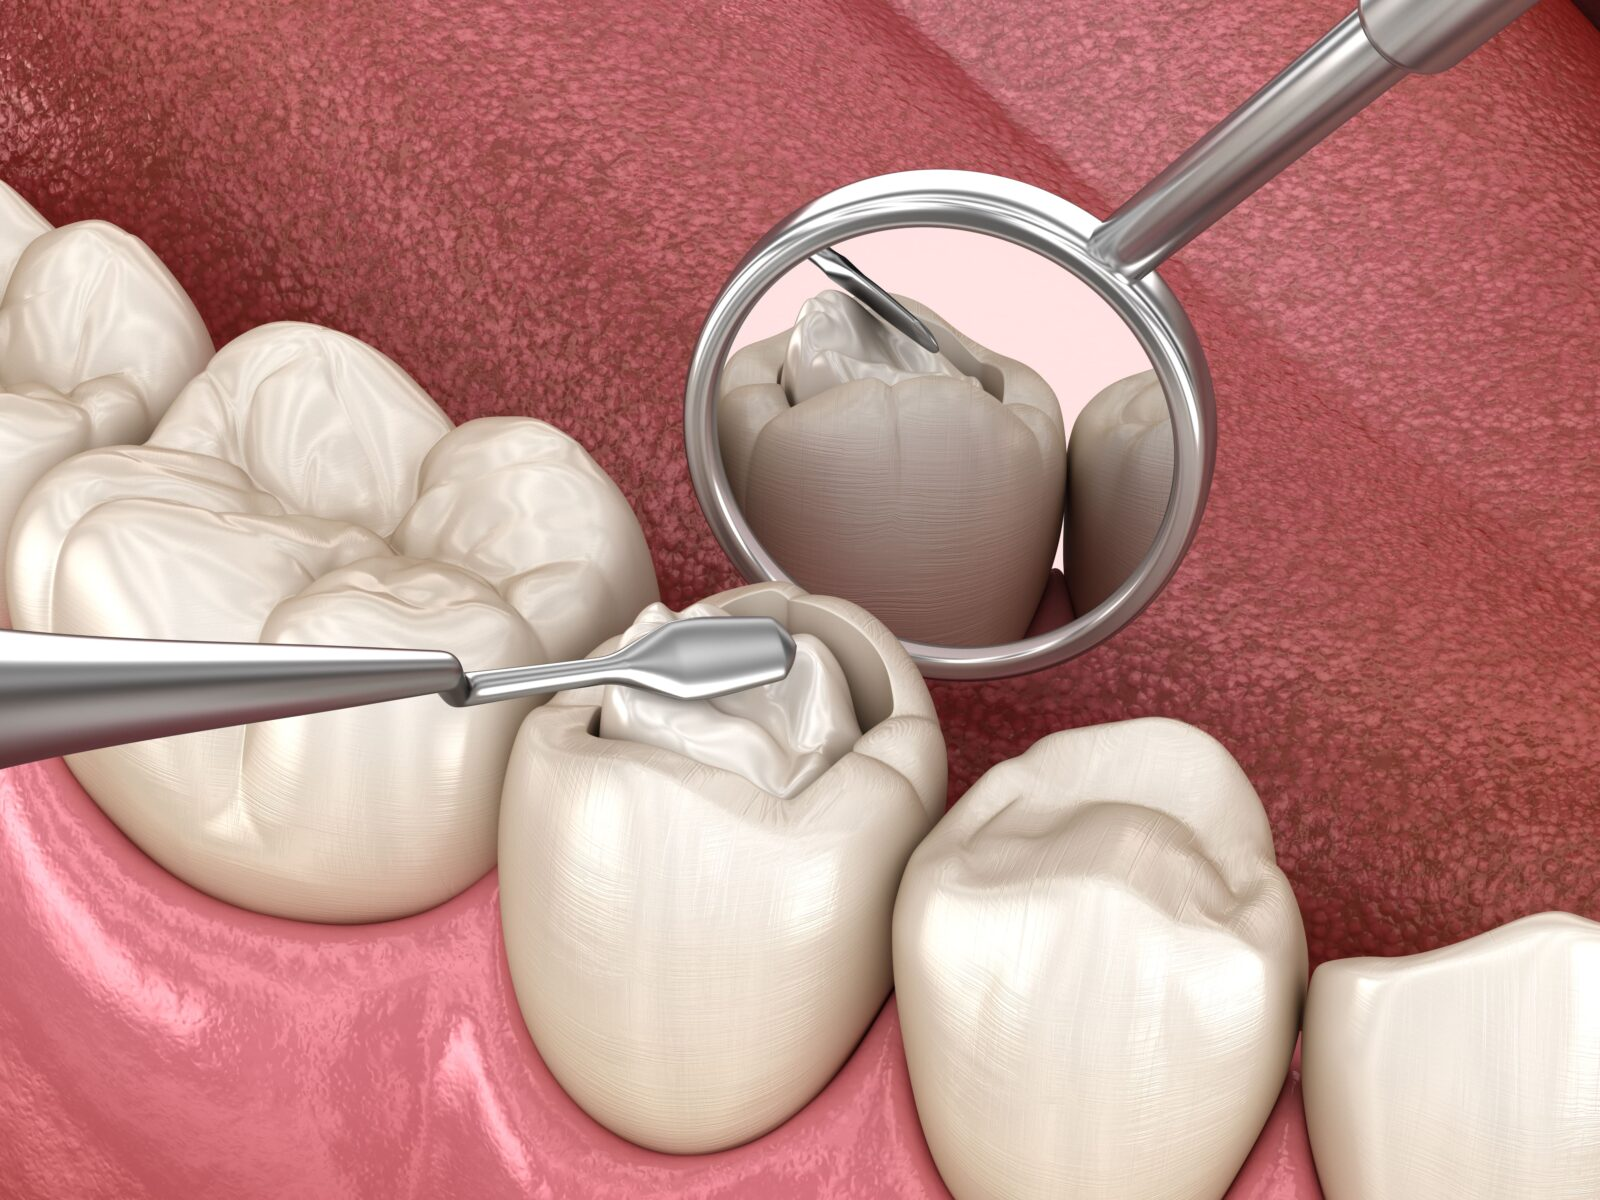 placing composite resin in a dental cavity